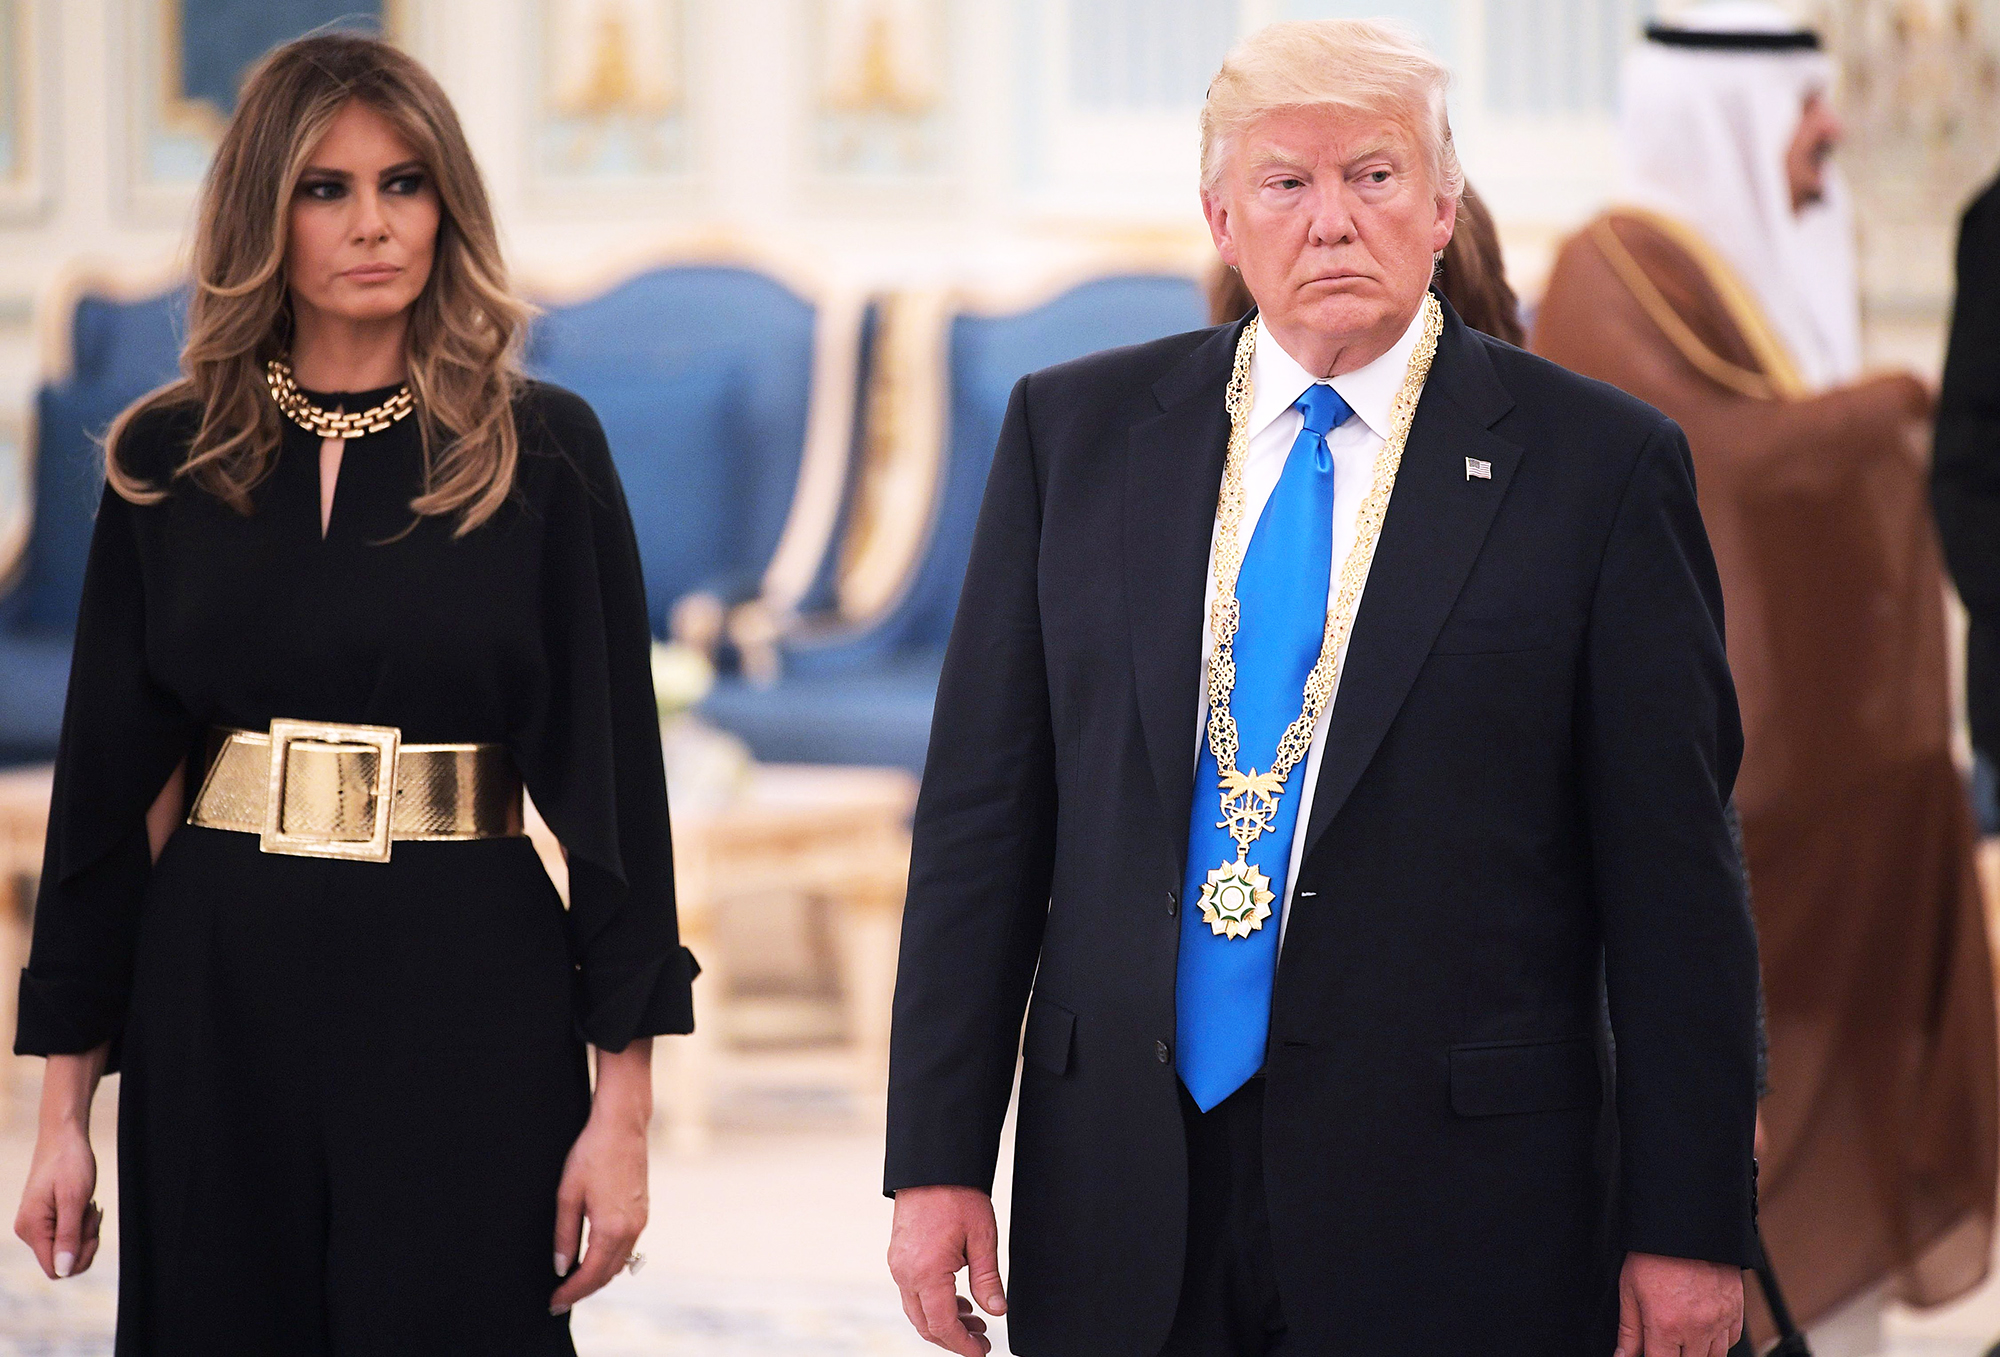 Melania and Donald Trump make their way to a luncheon after Trump received the Order of Abdulaziz Al Saud medal from Saudi Arabia's King Salman bin Abdulaziz Al Saud at the Saudi Royal Court in Riyadh, Saudi Arabia, on May 20, 2017.